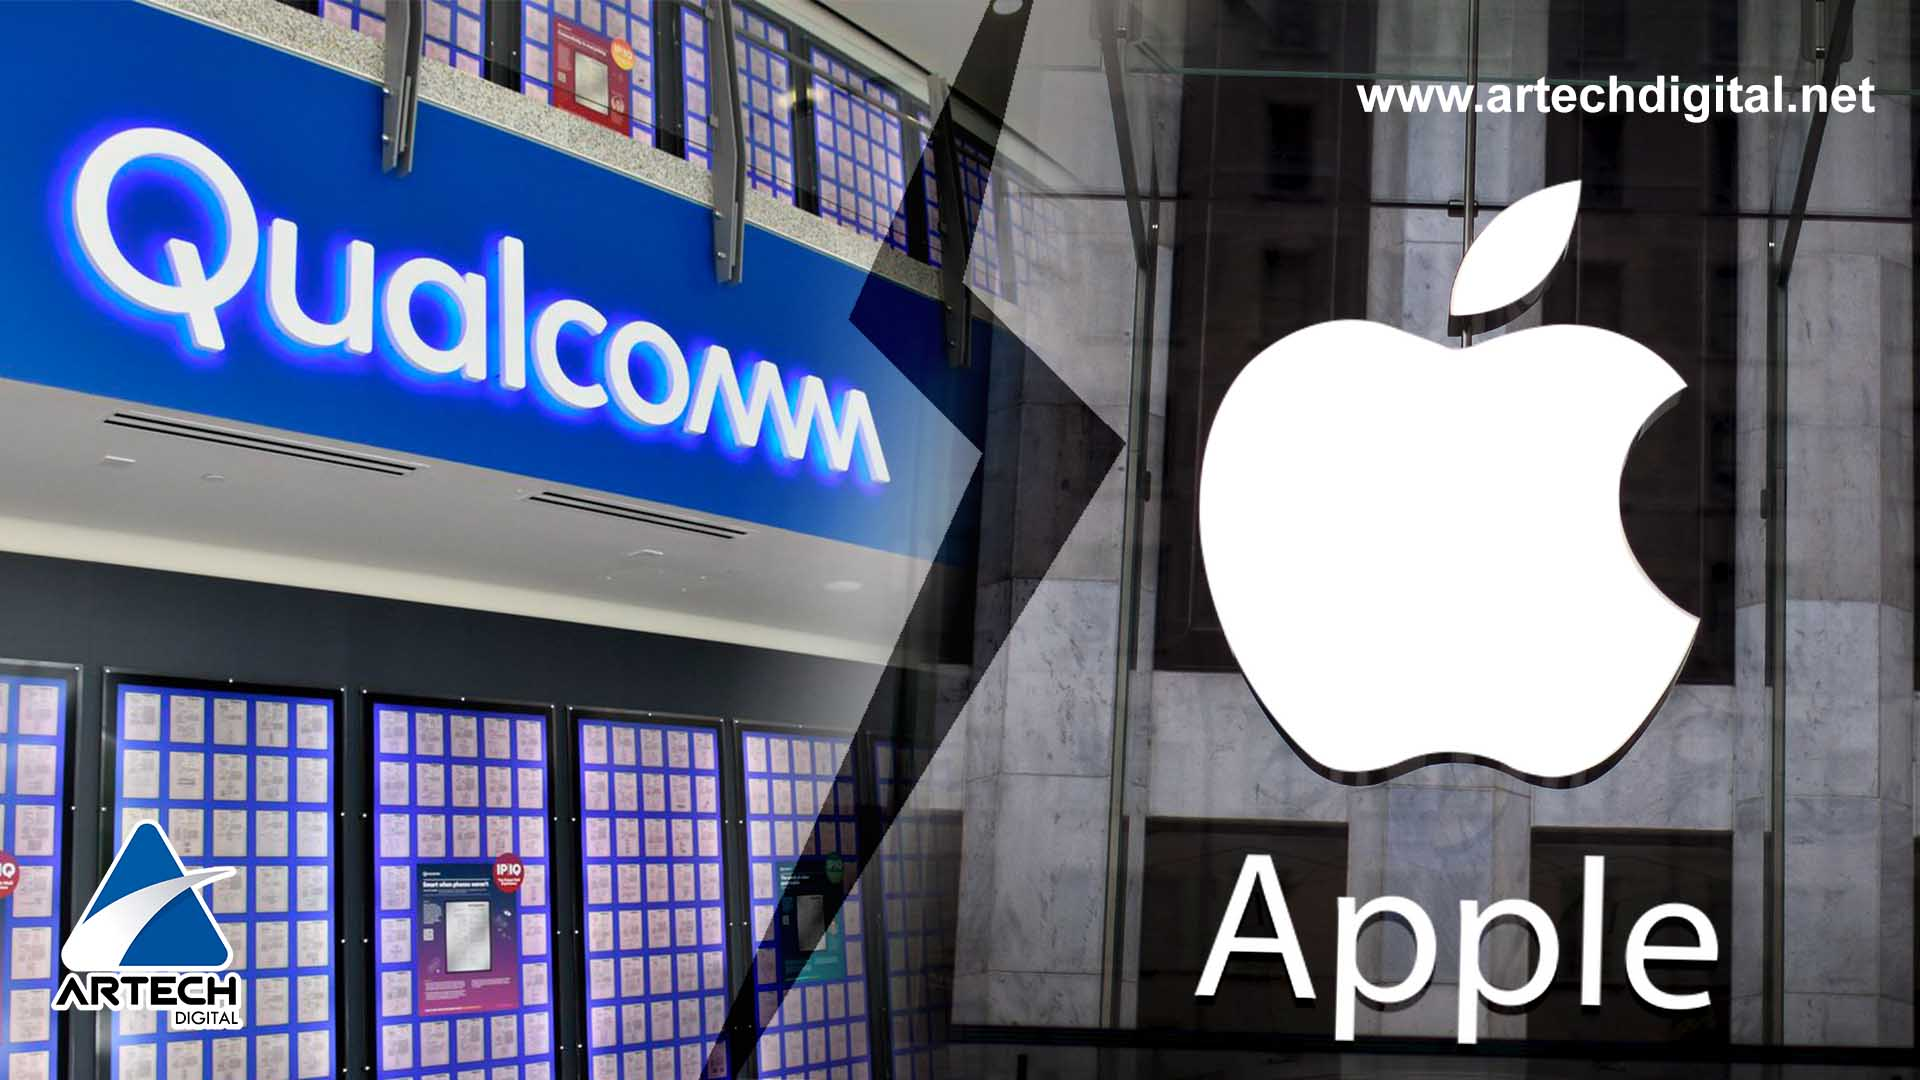 Qualcomm responsabiliza a Apple de distribuir información secreta a Intel